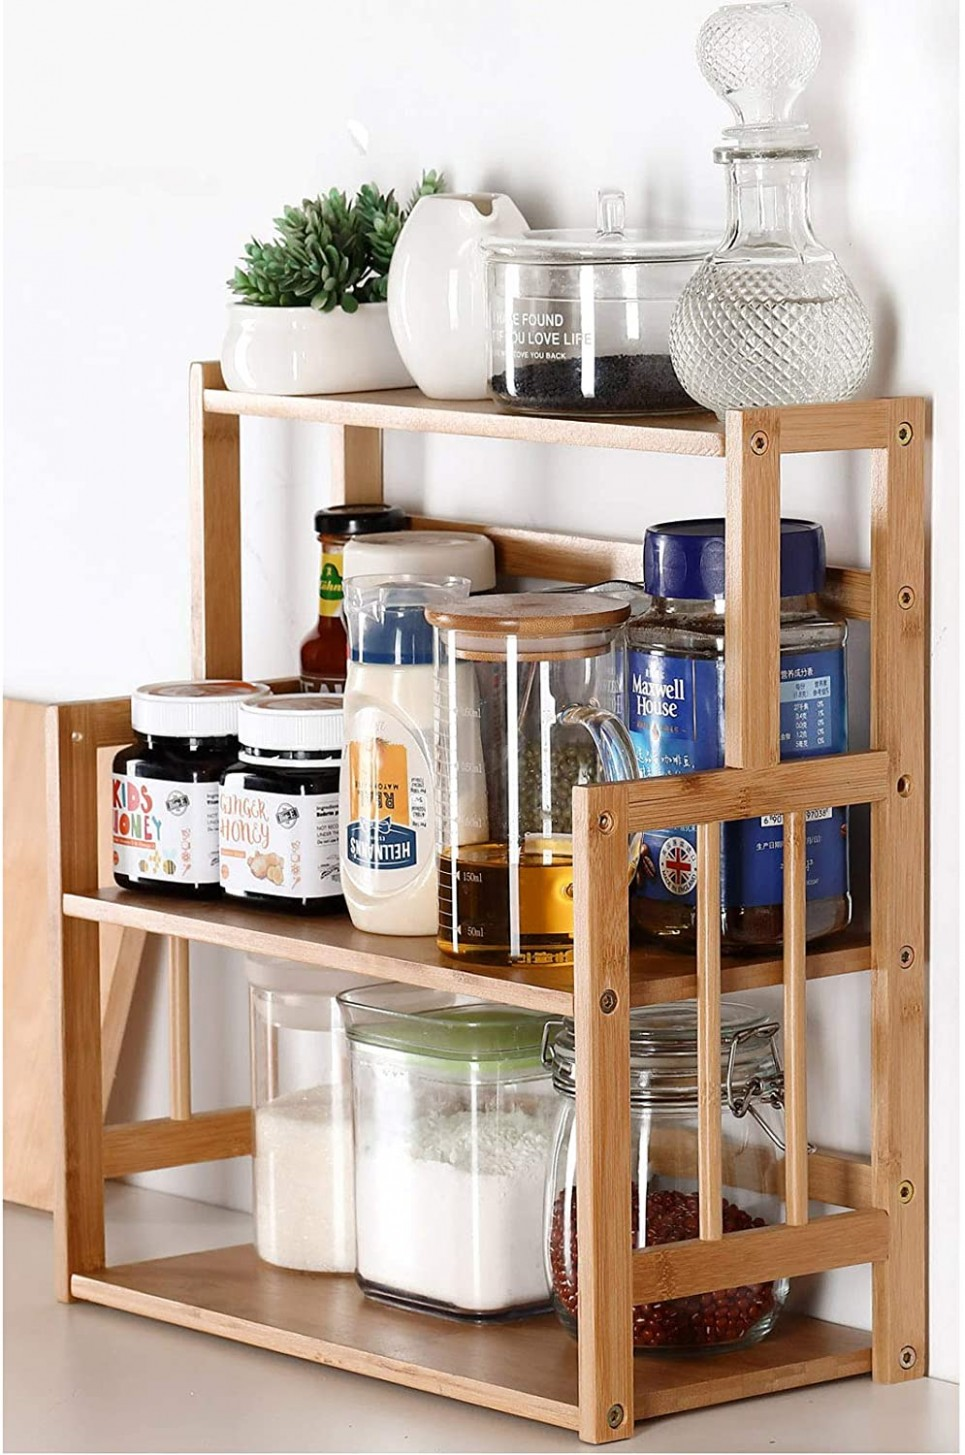 Amazon.com: Bamboo Spice Rack Storage Shelves-9 tier Standing  - 26 X10